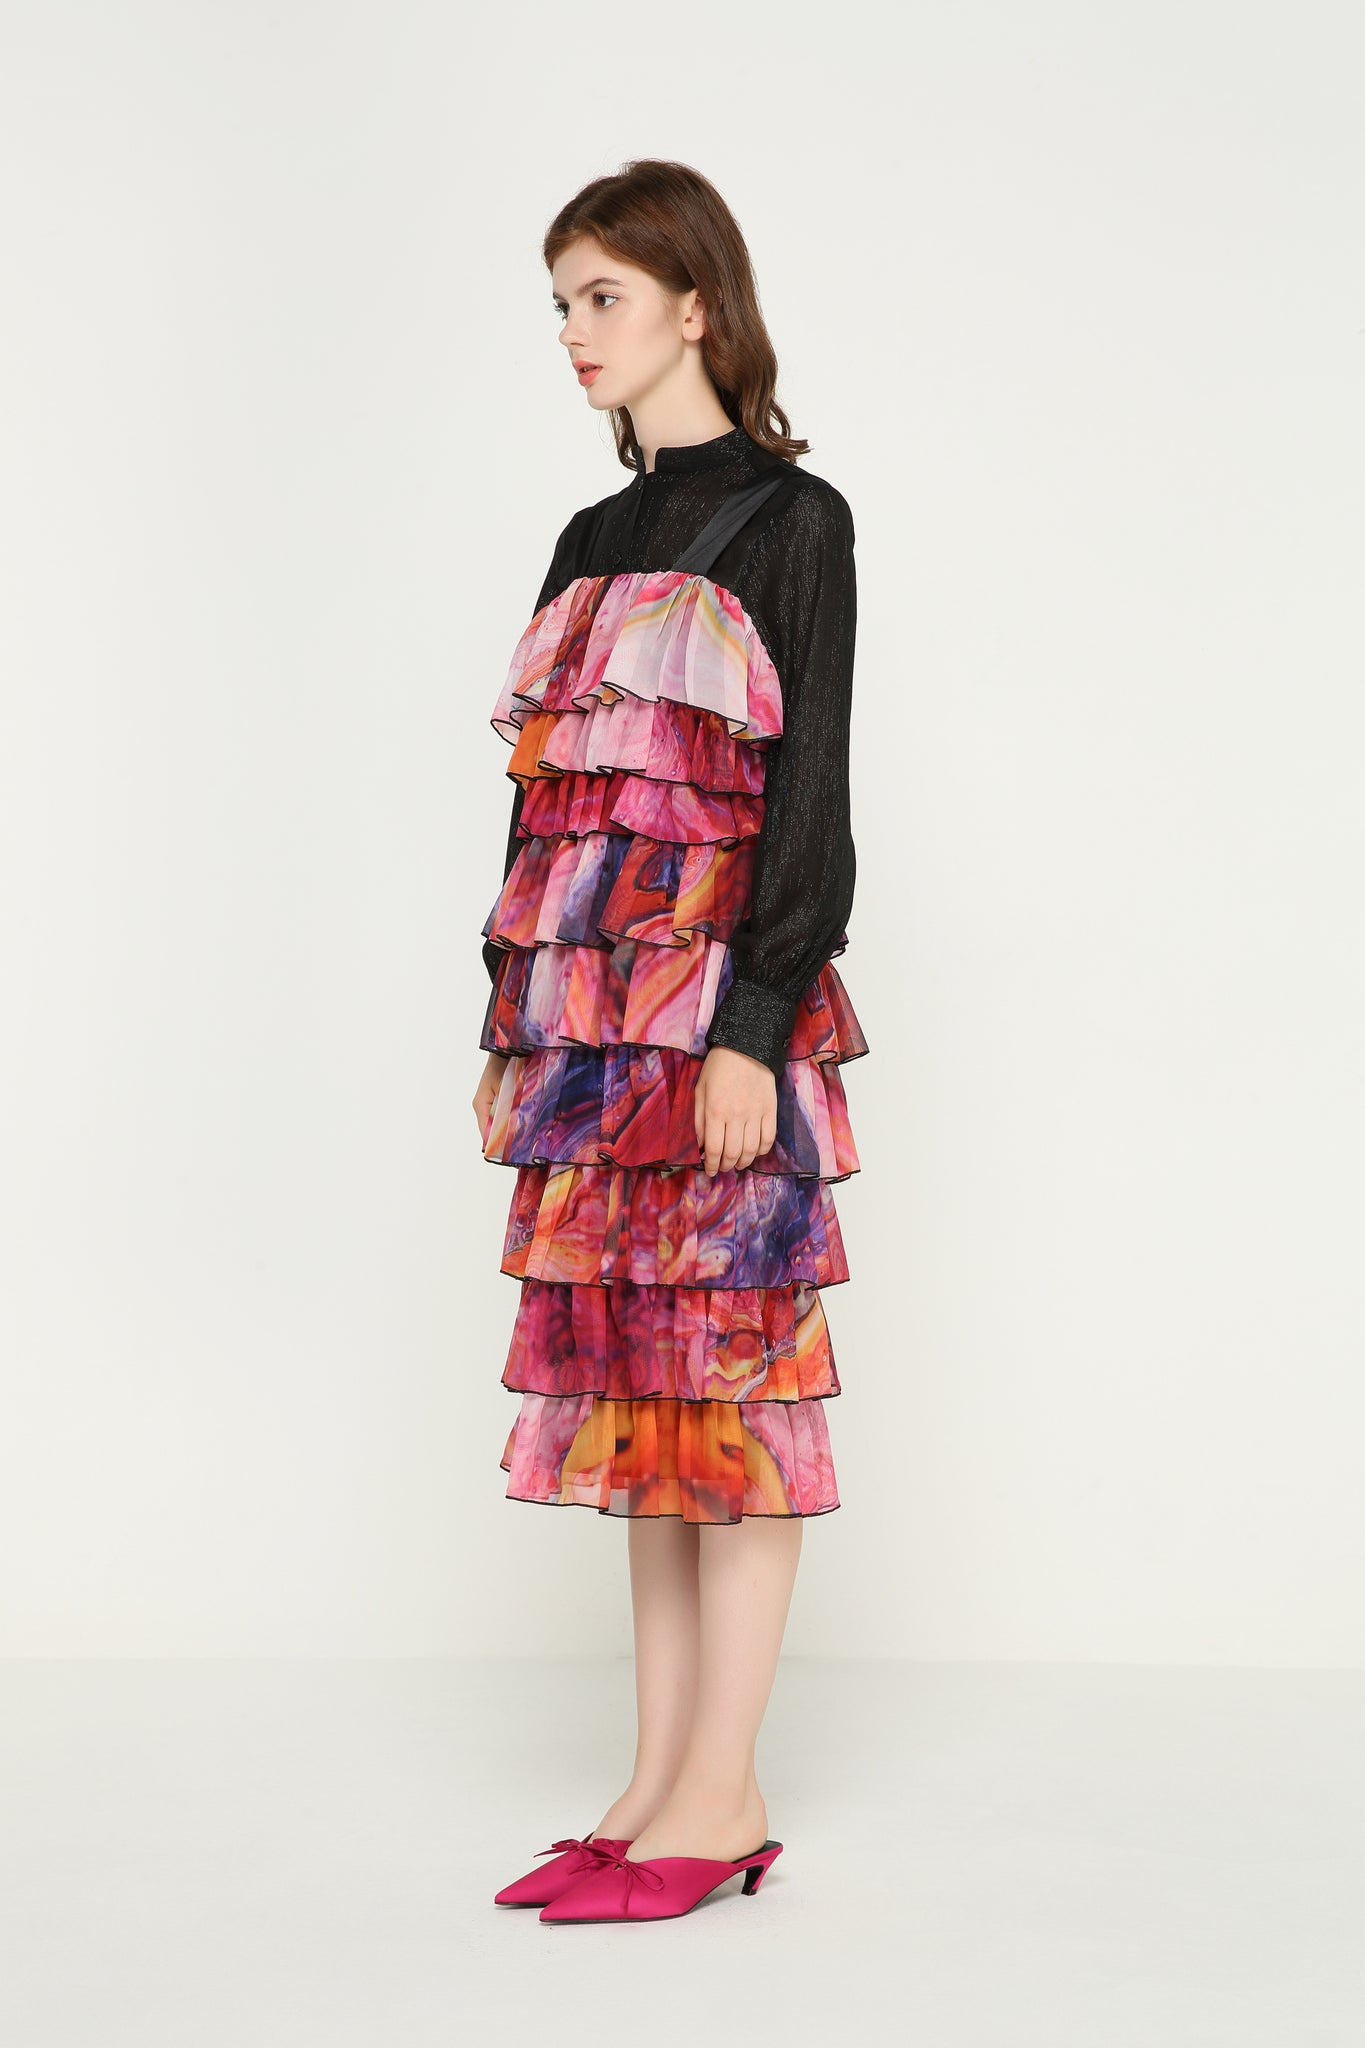 GERALDINE Layered Ruffles Chiffon Dress